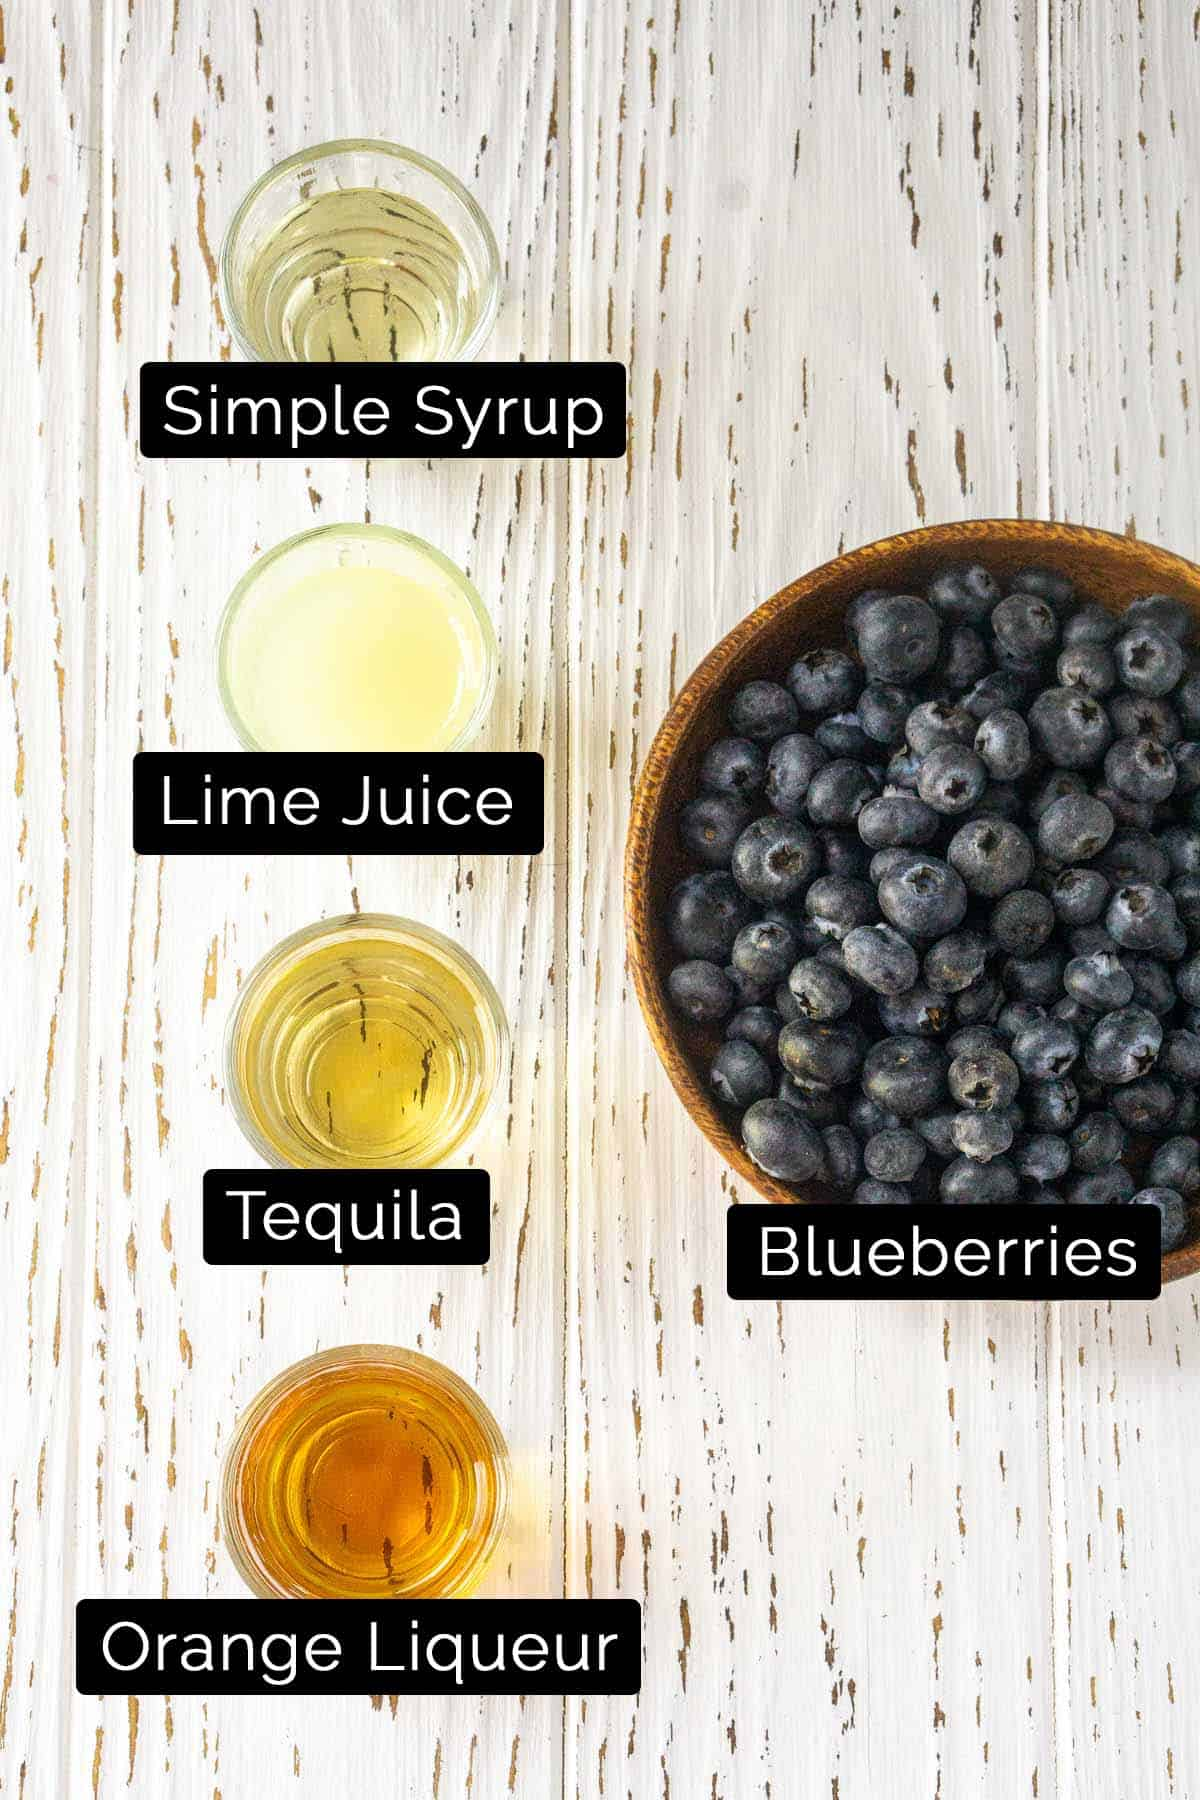 The blueberry margarita ingredients with white and black labels on a white board.